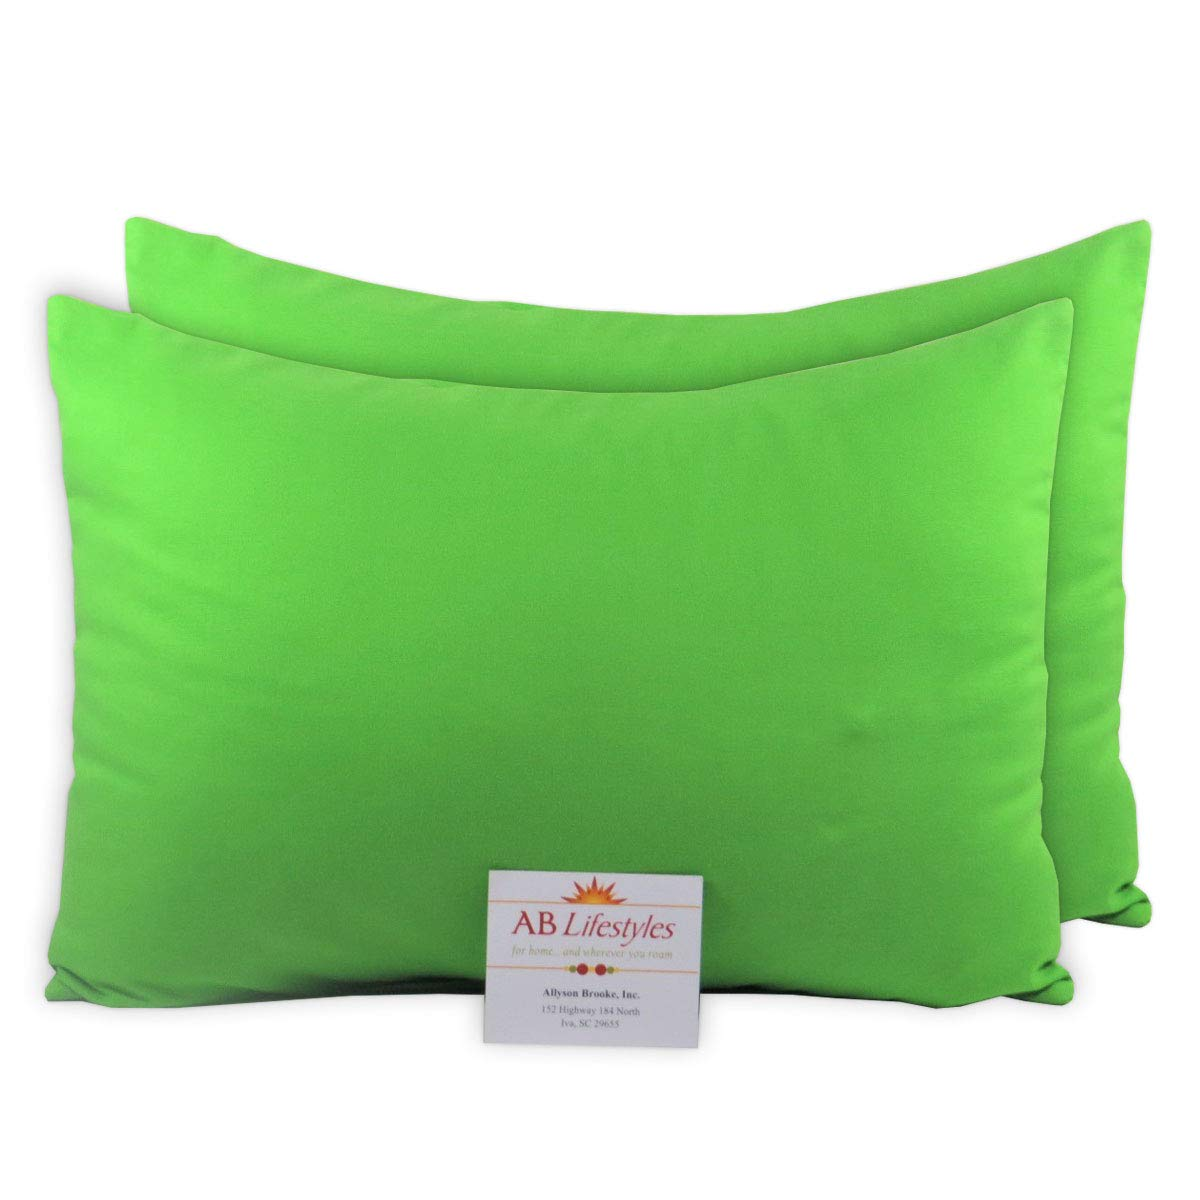 Toddler Size Pillowcases Bright Green AB Lifestyles 2 Pack 13x18 100/% Cotton Travel Pillowcases Envelope Closure Fits MyPillow Travel Size